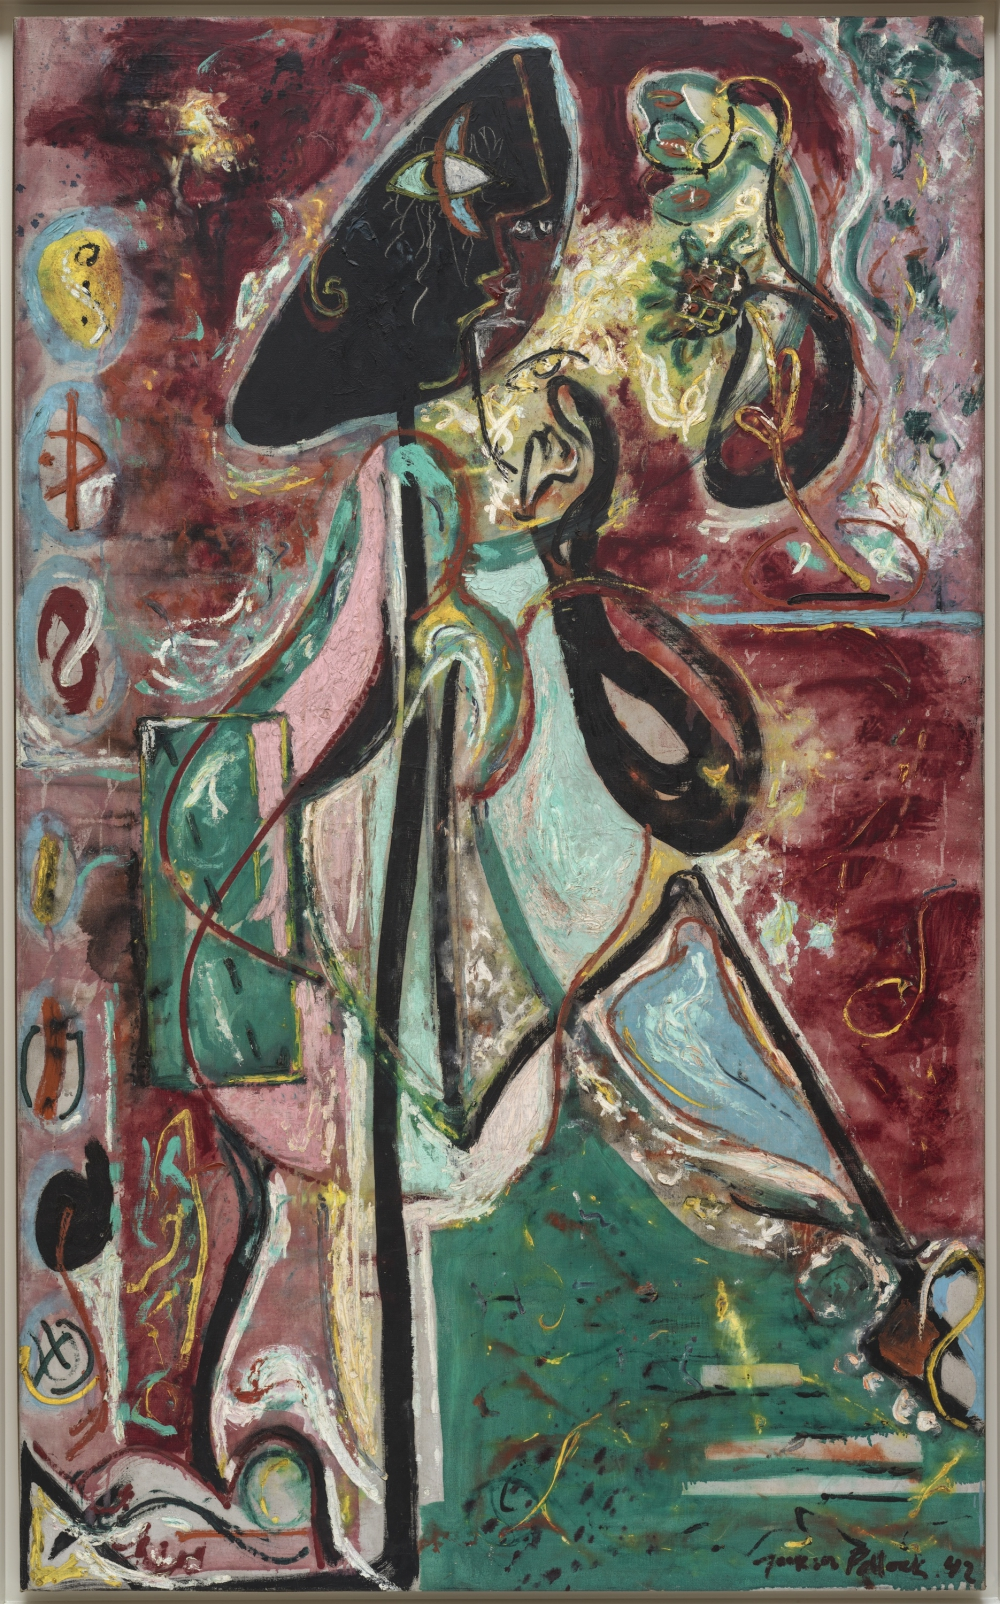 Jackson Pollock (Cody 1912-East Hampton 1956) La donna luna (The Moon Woman), 1942